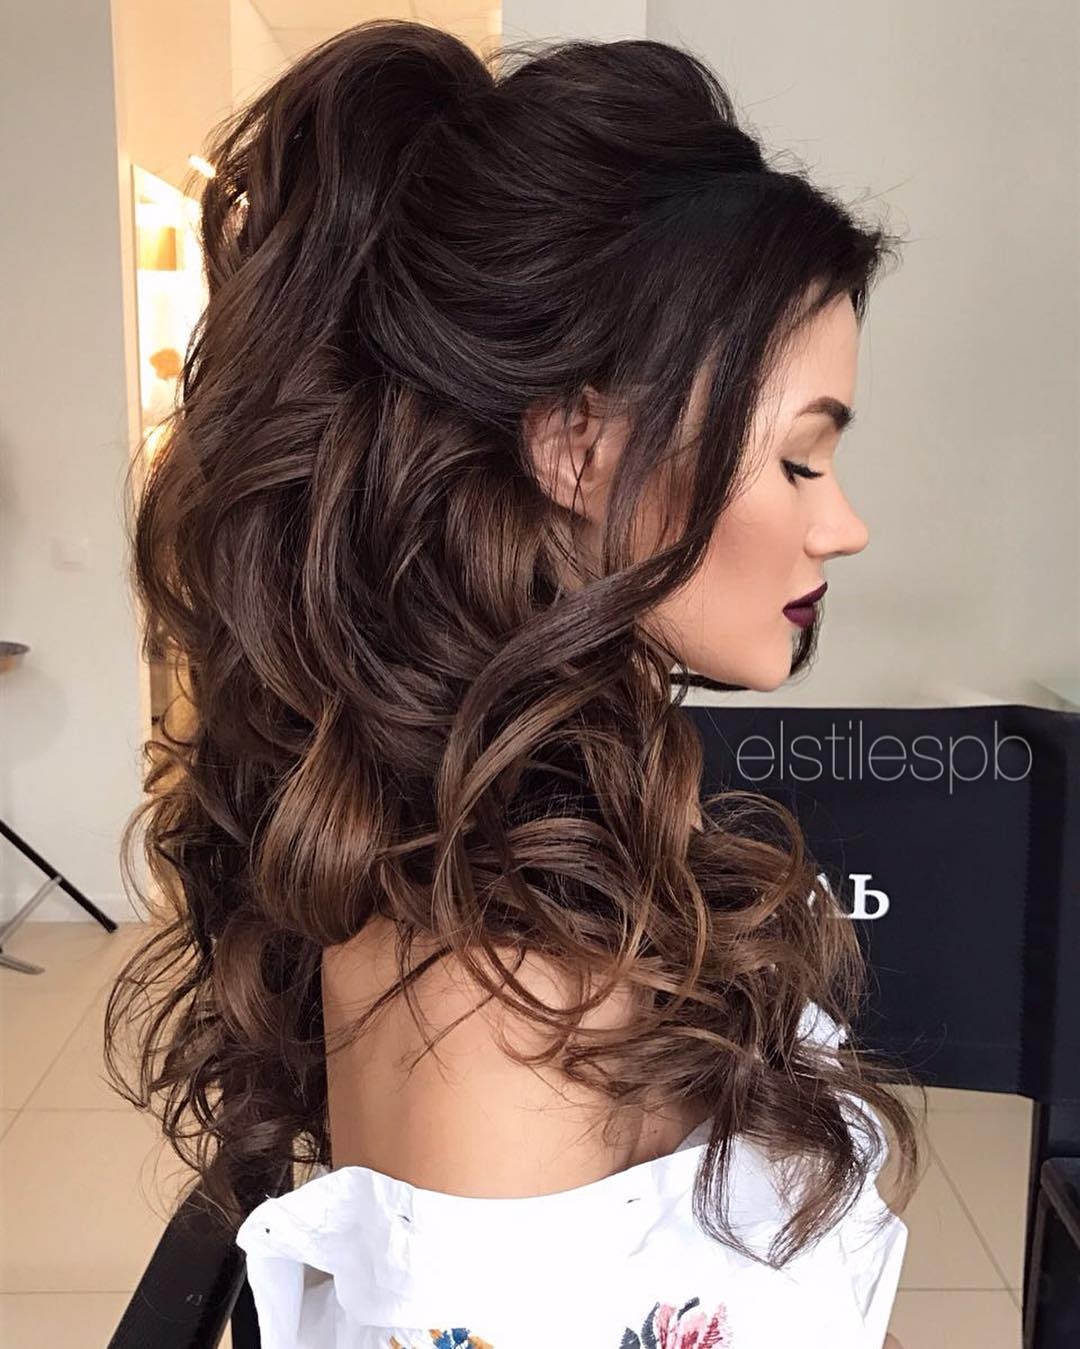 Watch 20 Ponytail Hairstyles: Discover Latest Ponytail Ideas Now video